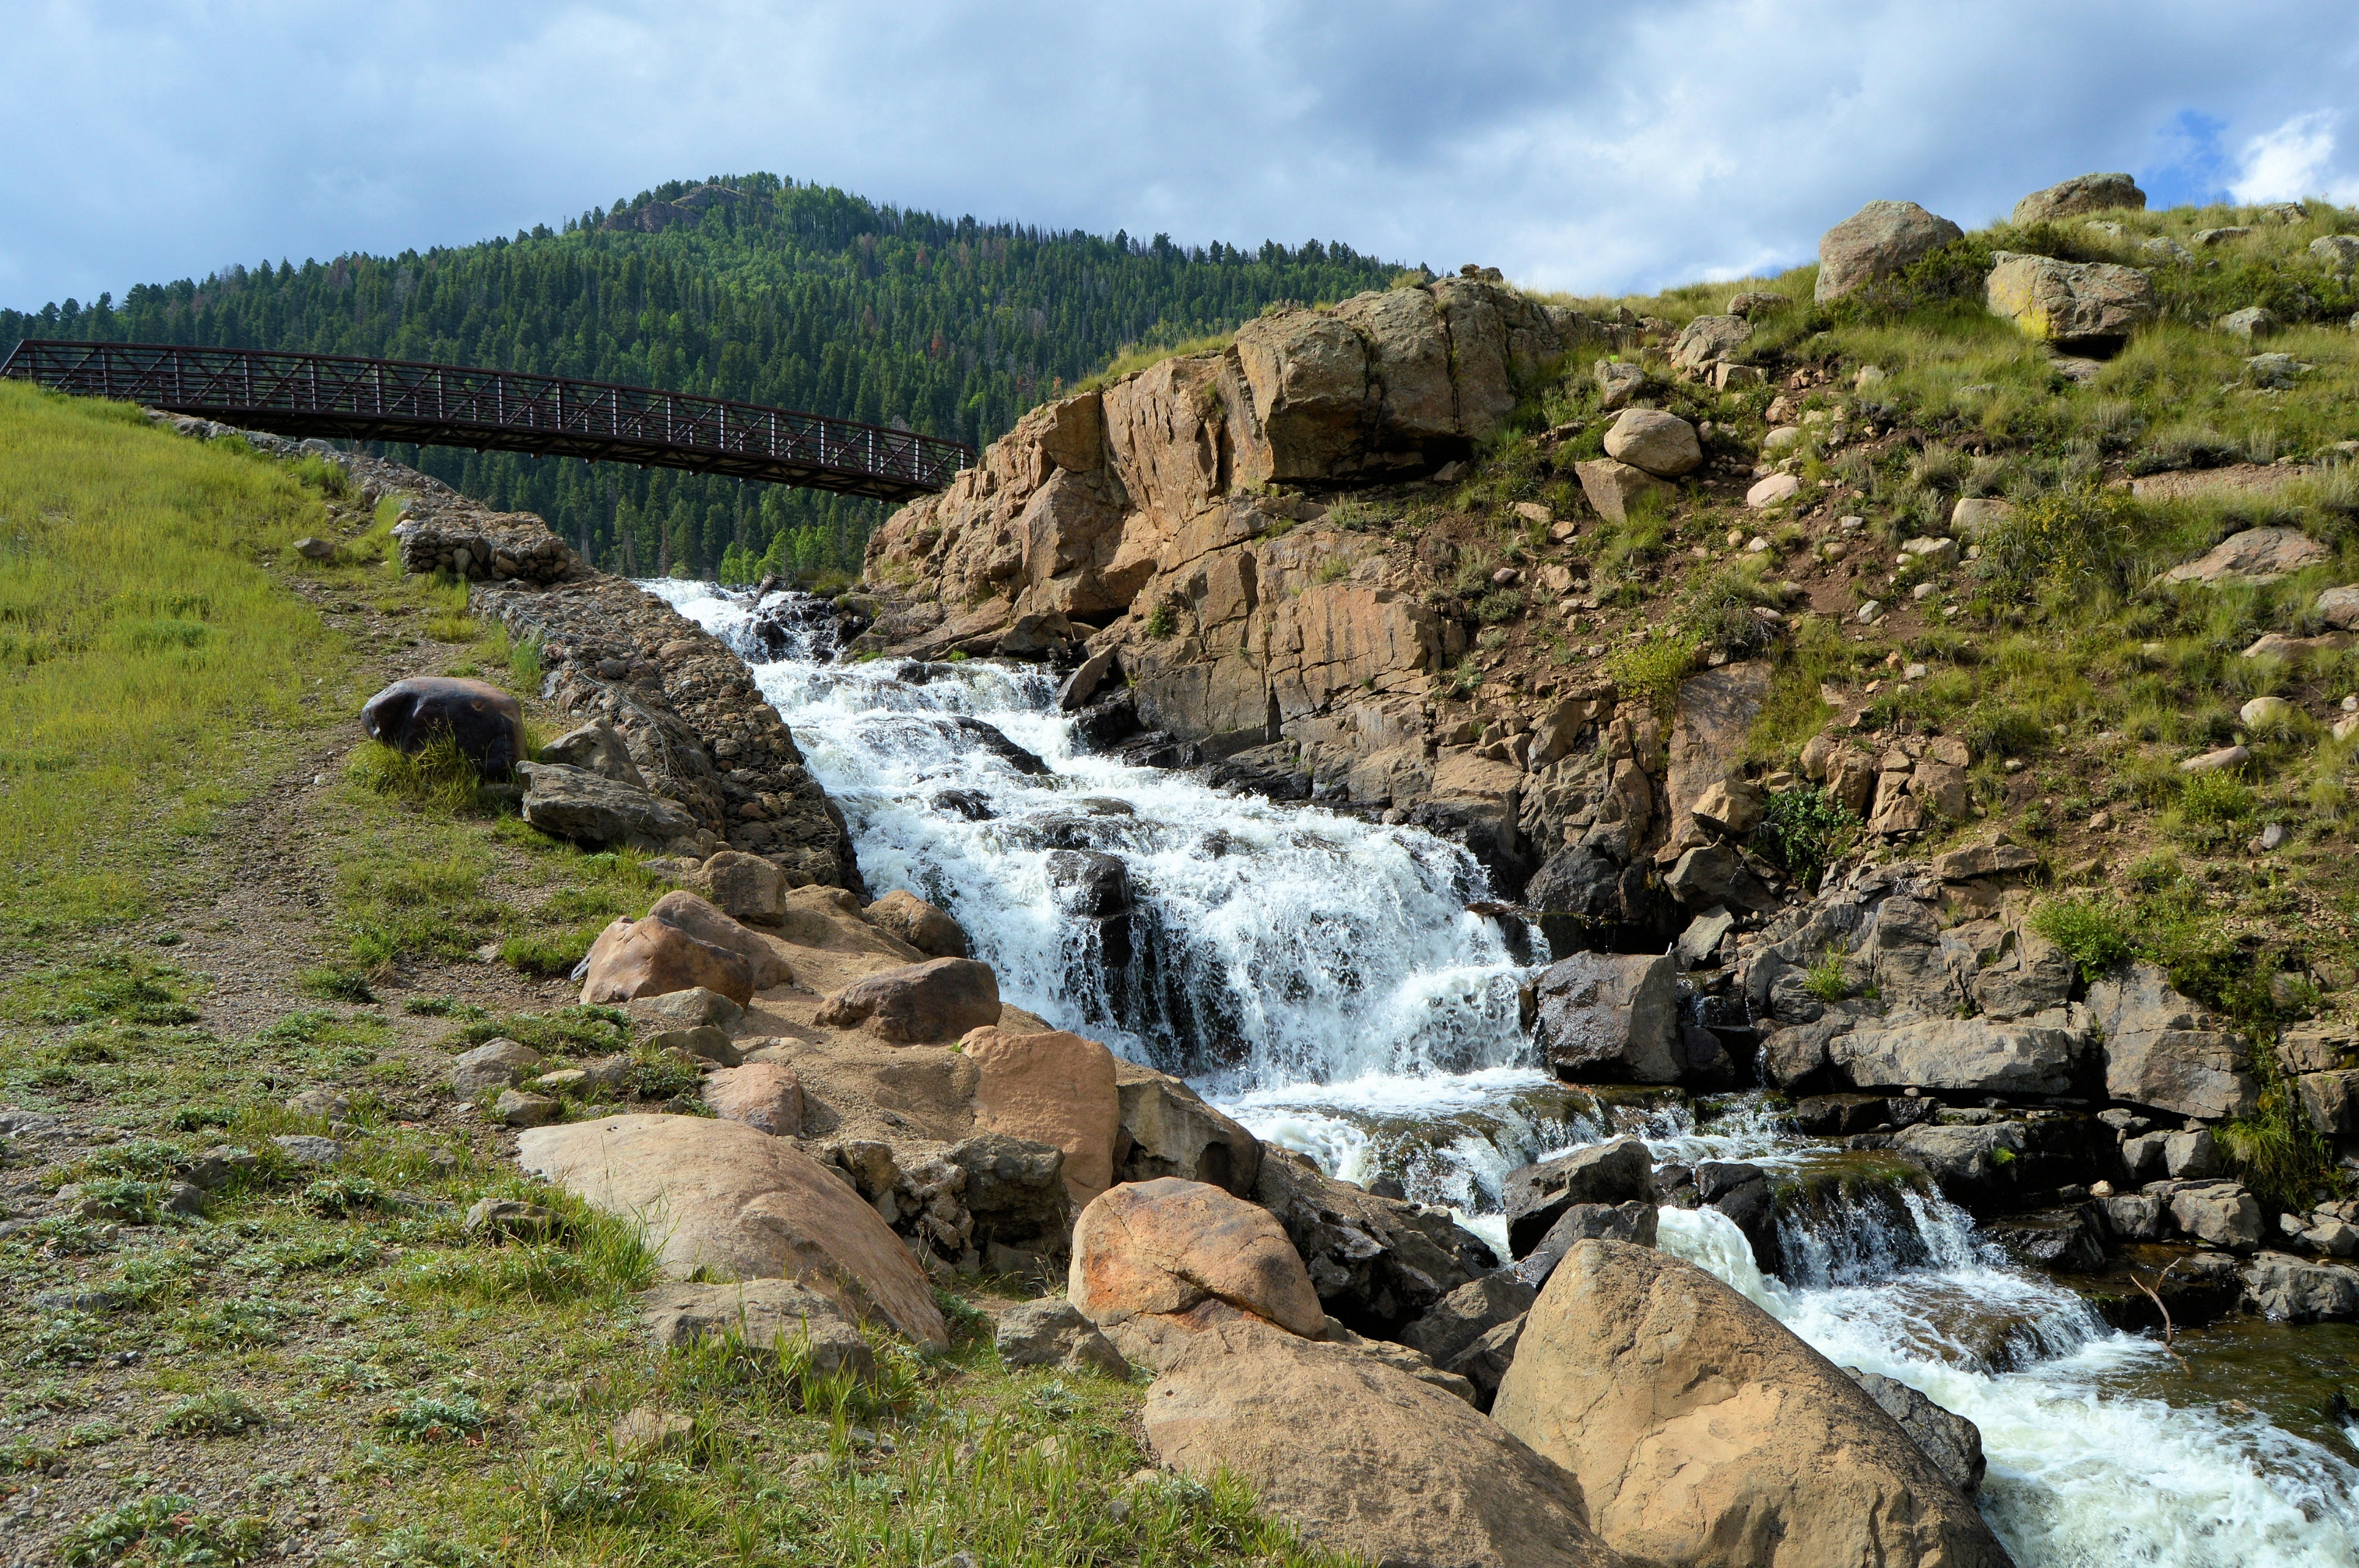 South Fork, Colorado, United States of America